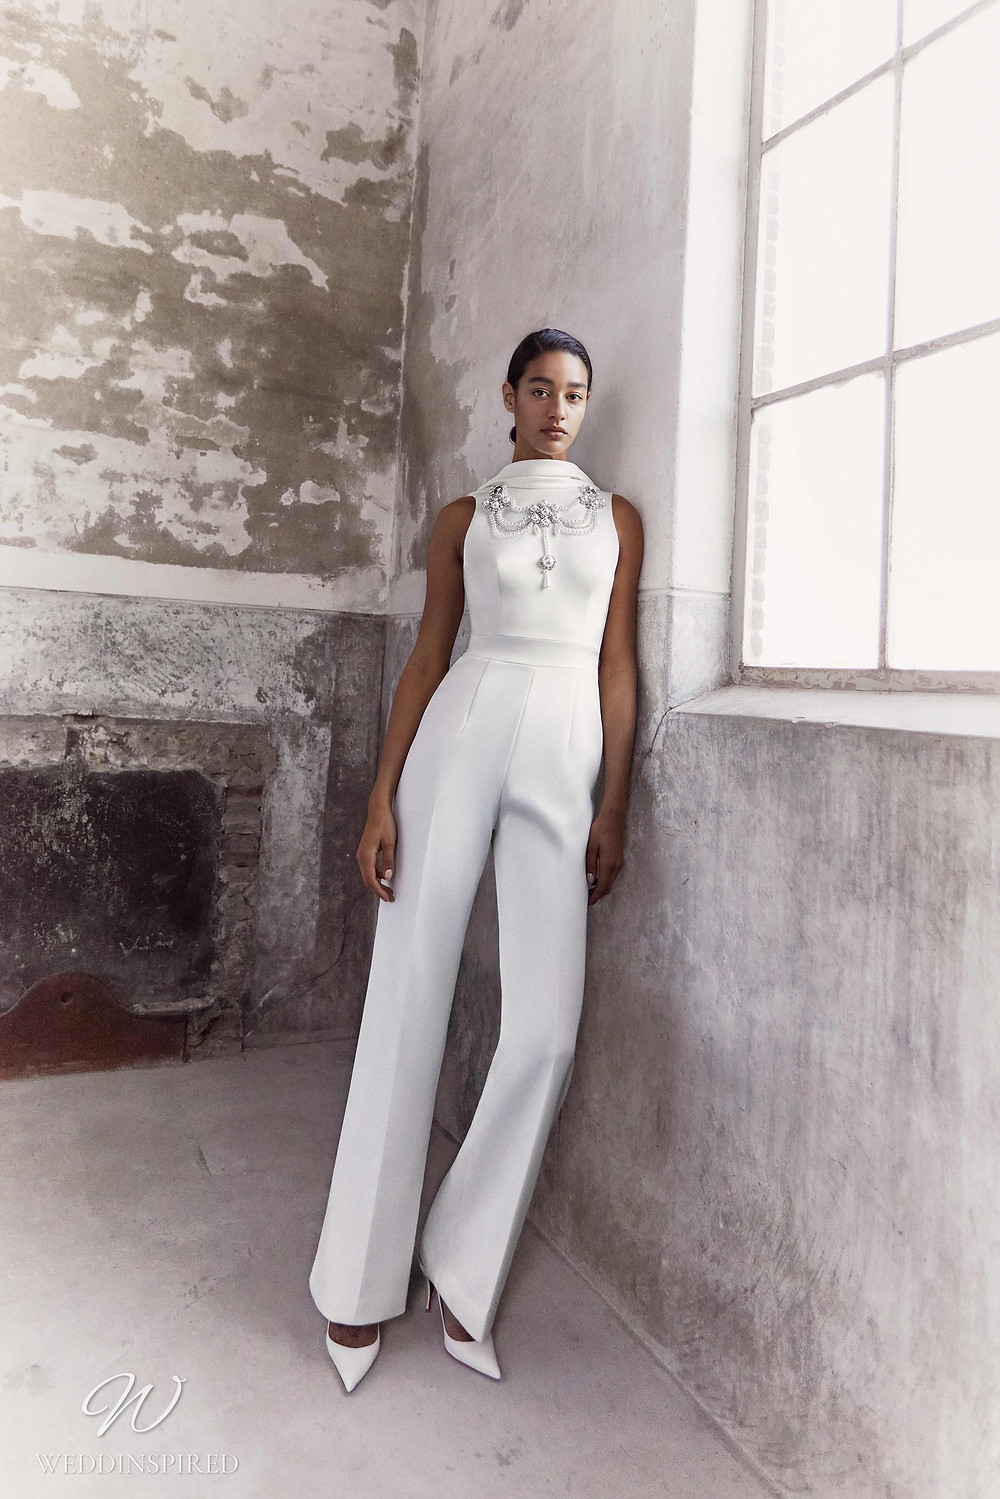 A Viktor & Rolf Fall/Winter 2021 simple white wedding pantsuit or jumpsuit with a high neckline